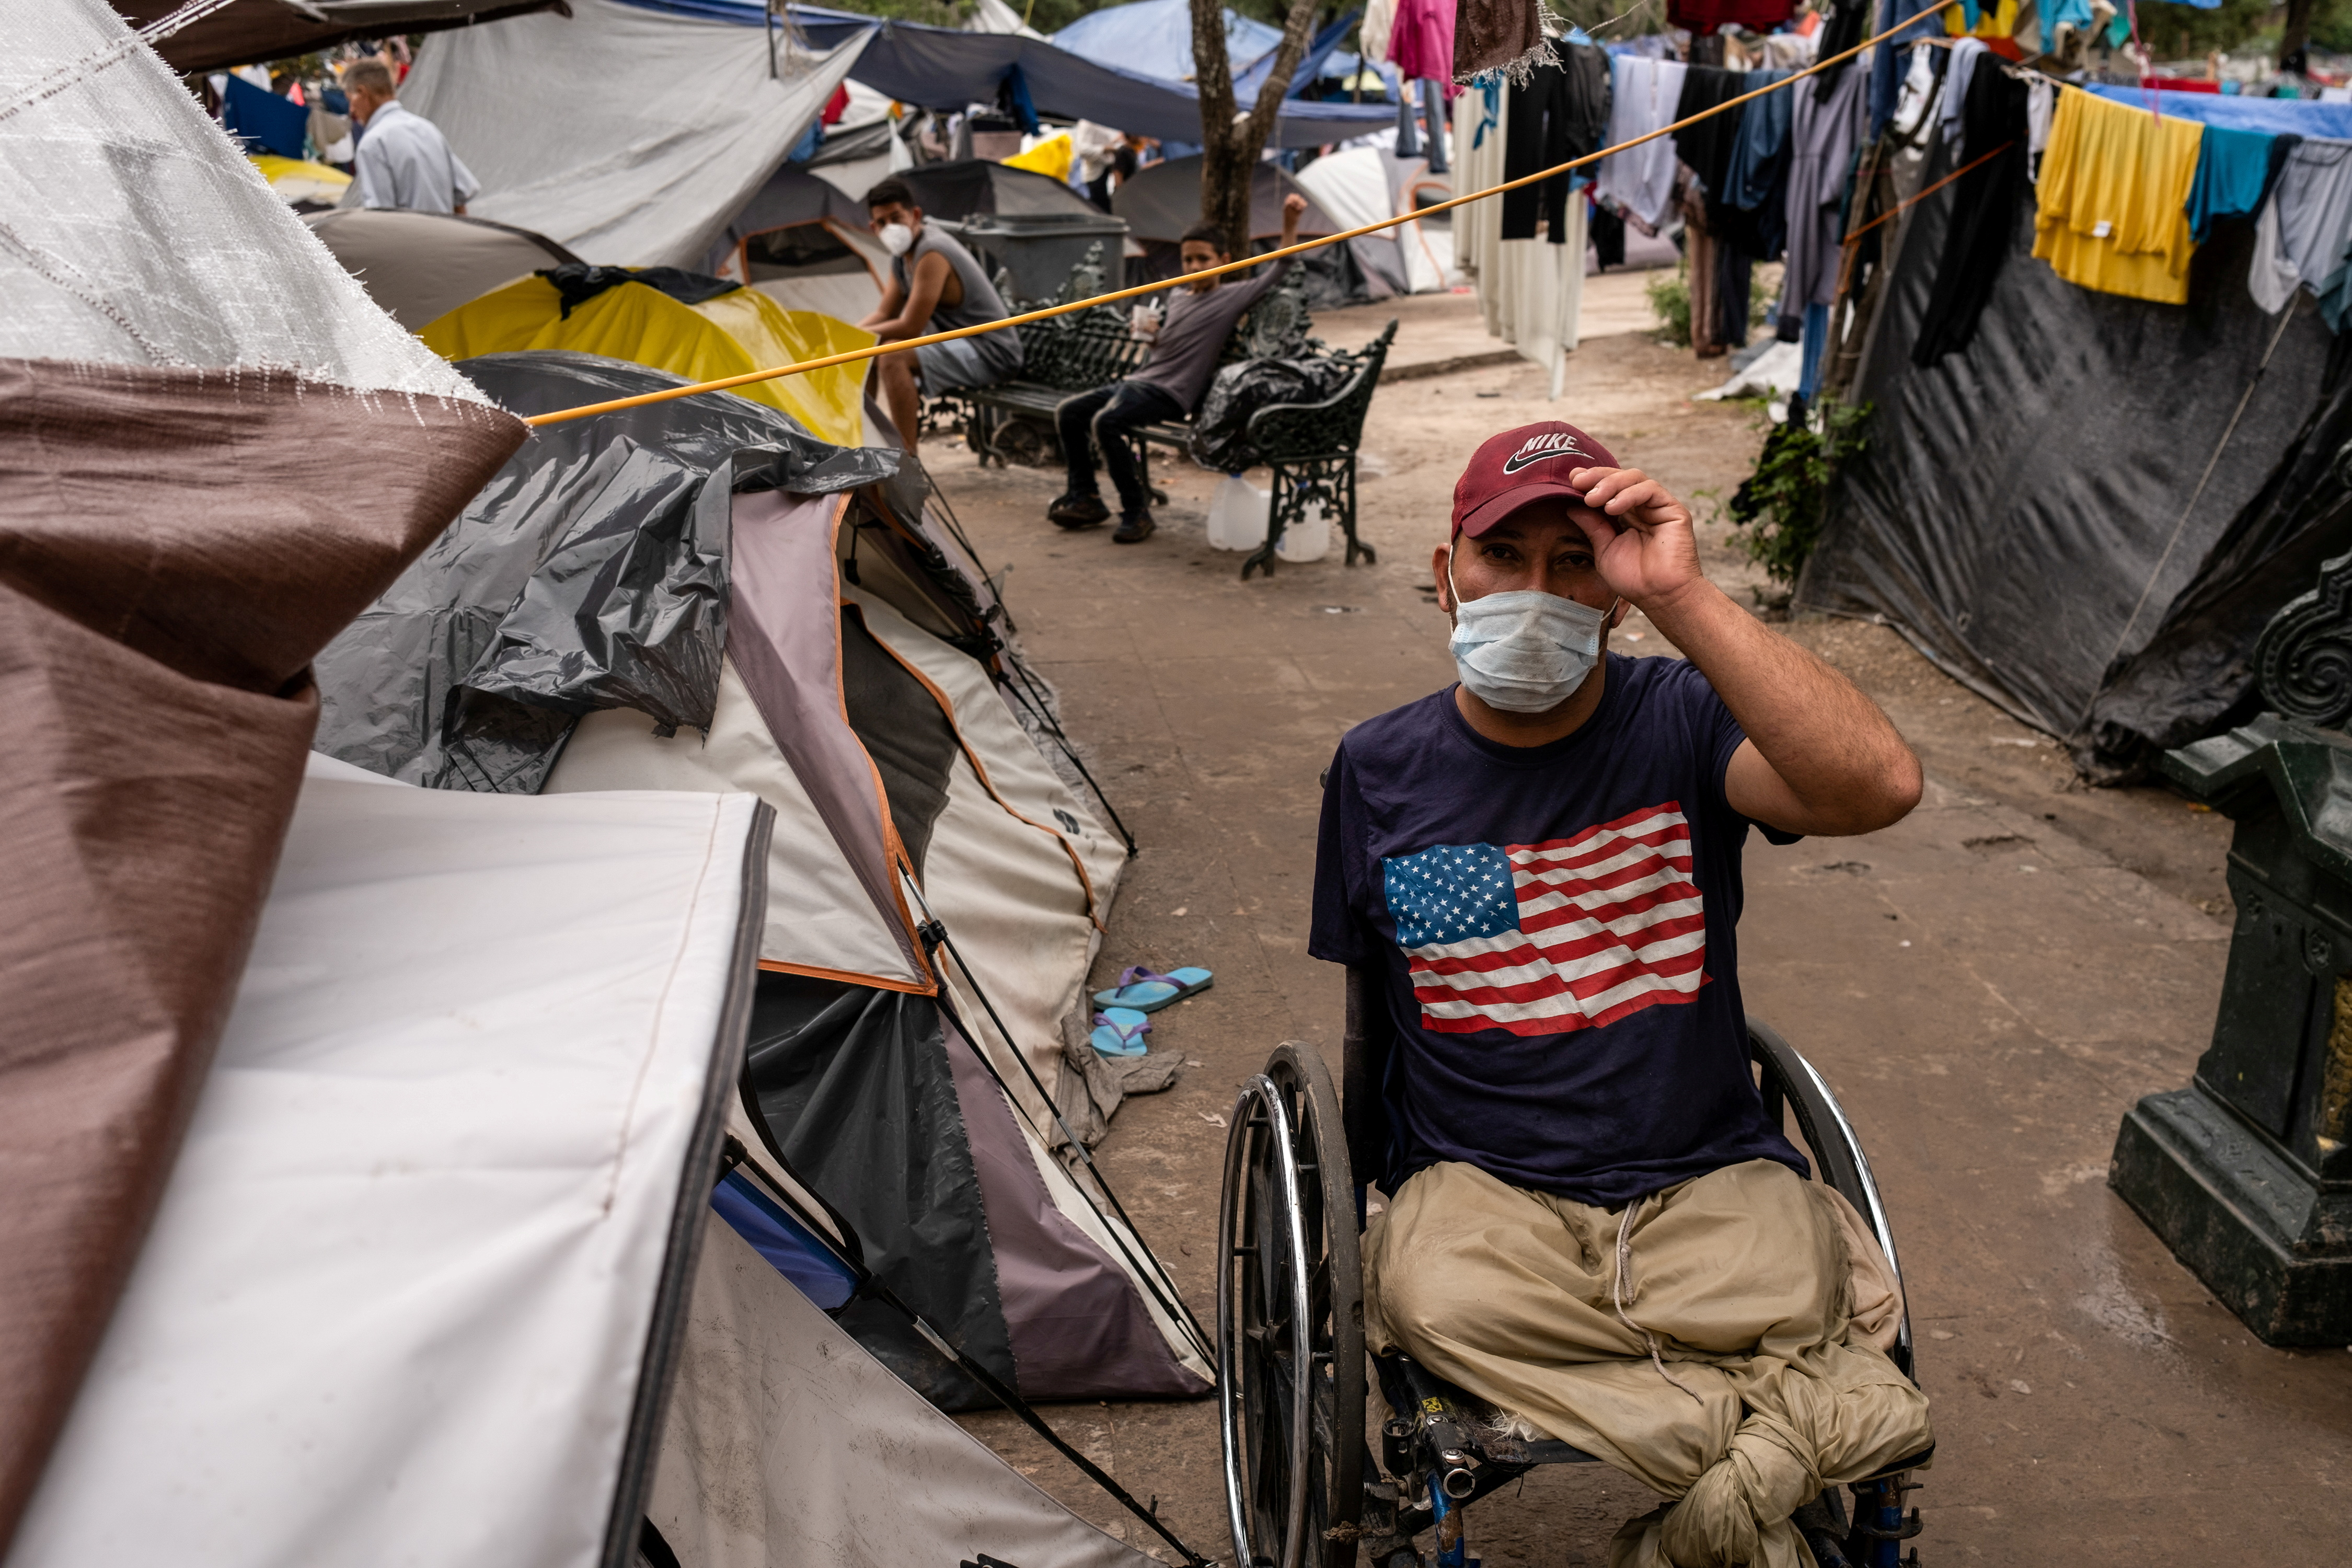 An asylum-seeking migrant from Honduras, Wilmer, 35, who was sent back to Mexico under Title 42 after crossing the border into the U.S. from Mexico, poses in his wheelchair in a public square where hundreds of migrants live in tents, in Reynosa, Mexico, July 10, 2021. REUTERS/Go Nakamura/File Photo